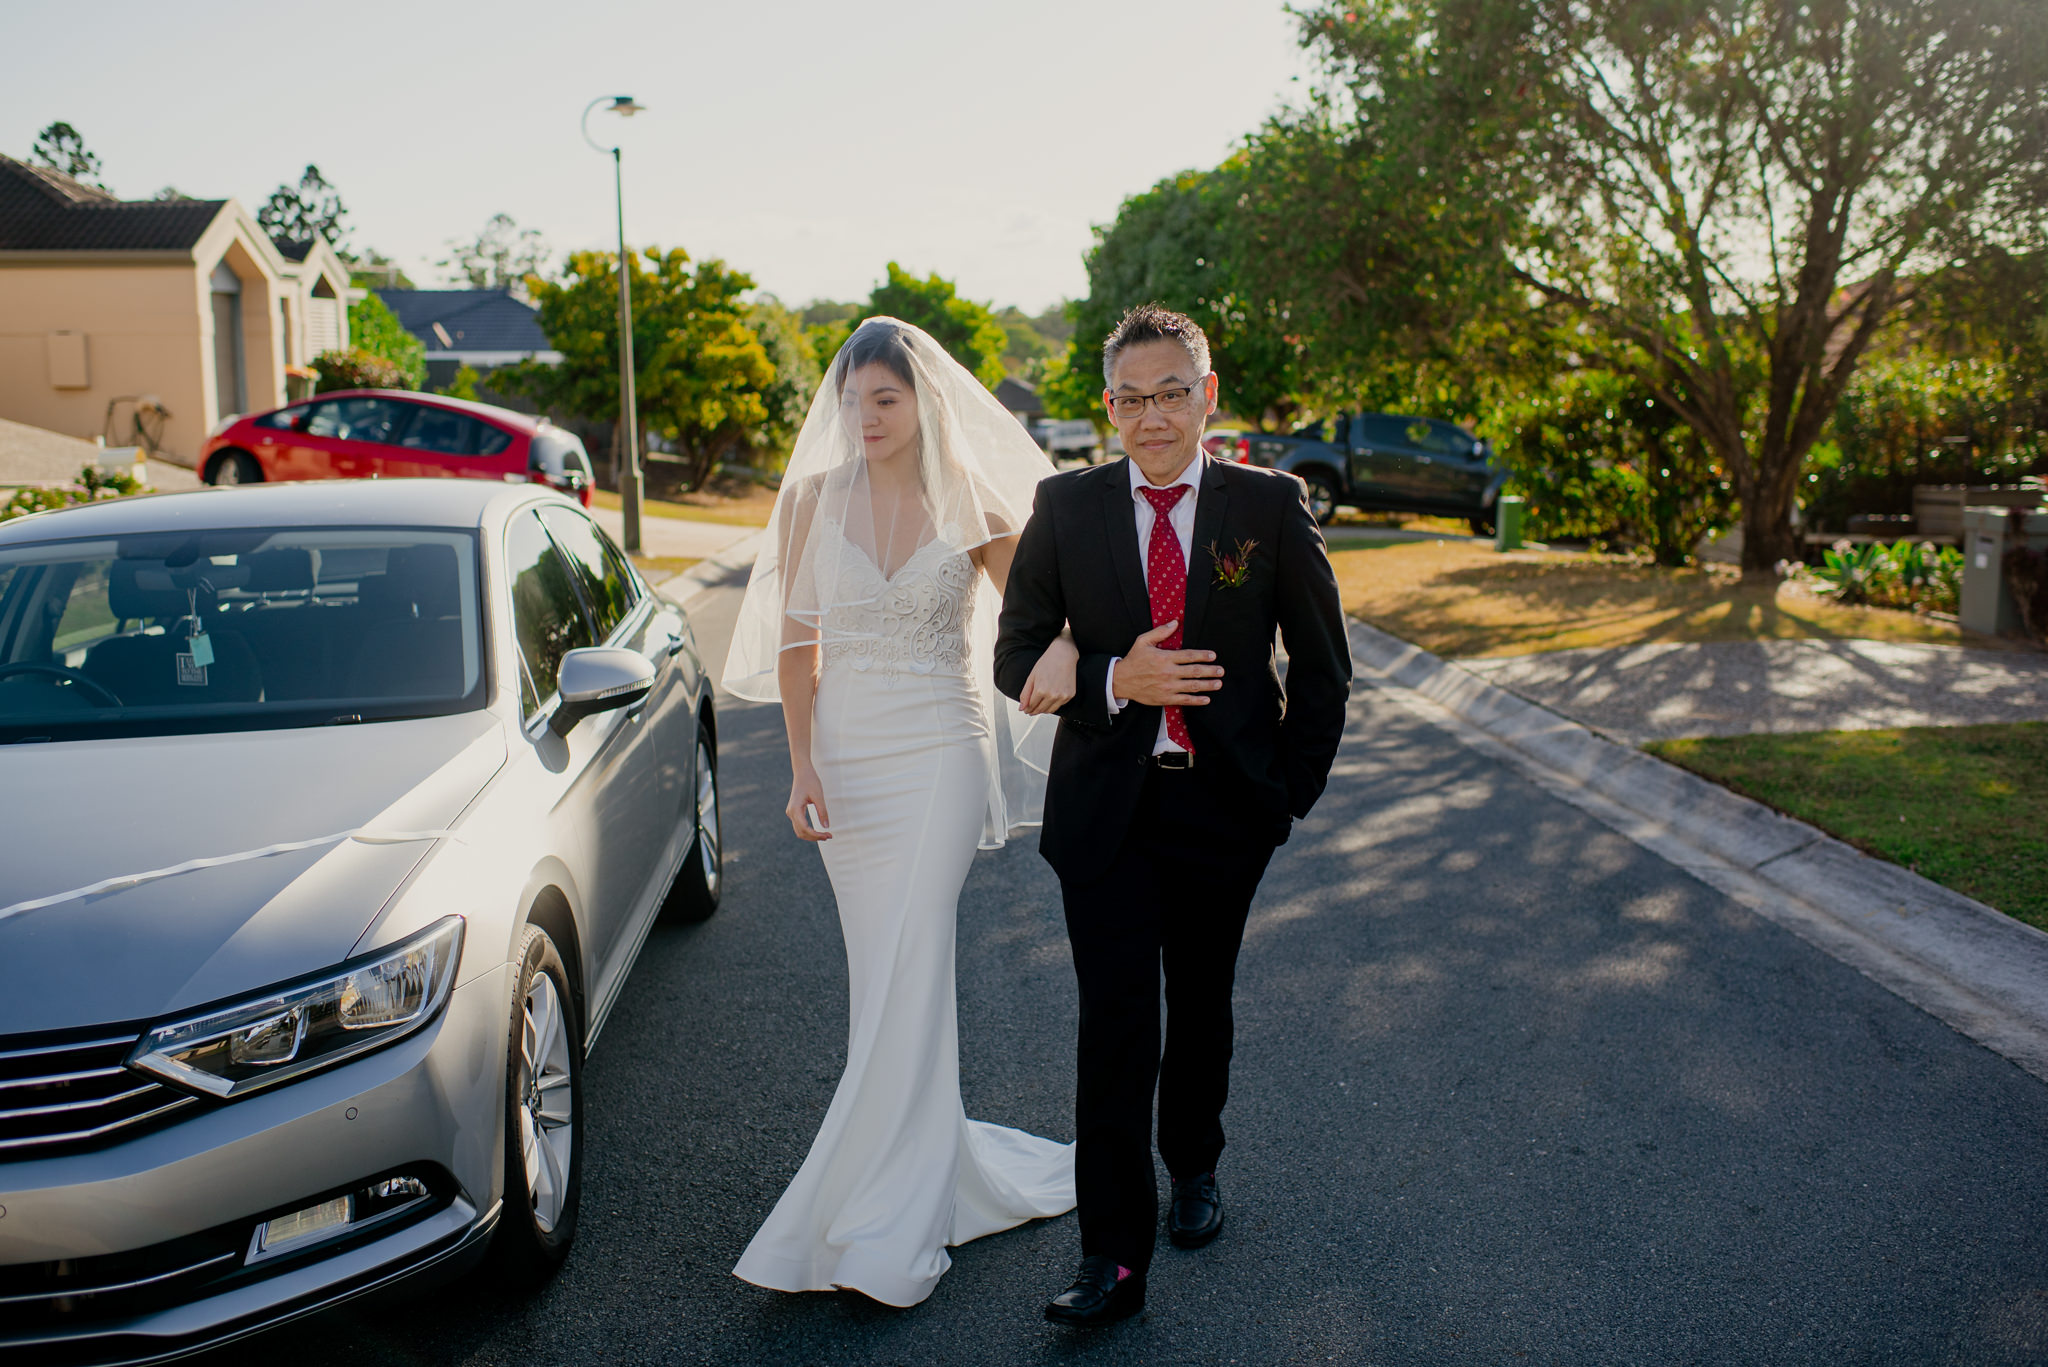 An Asian bride and her father link arms and walk down a road